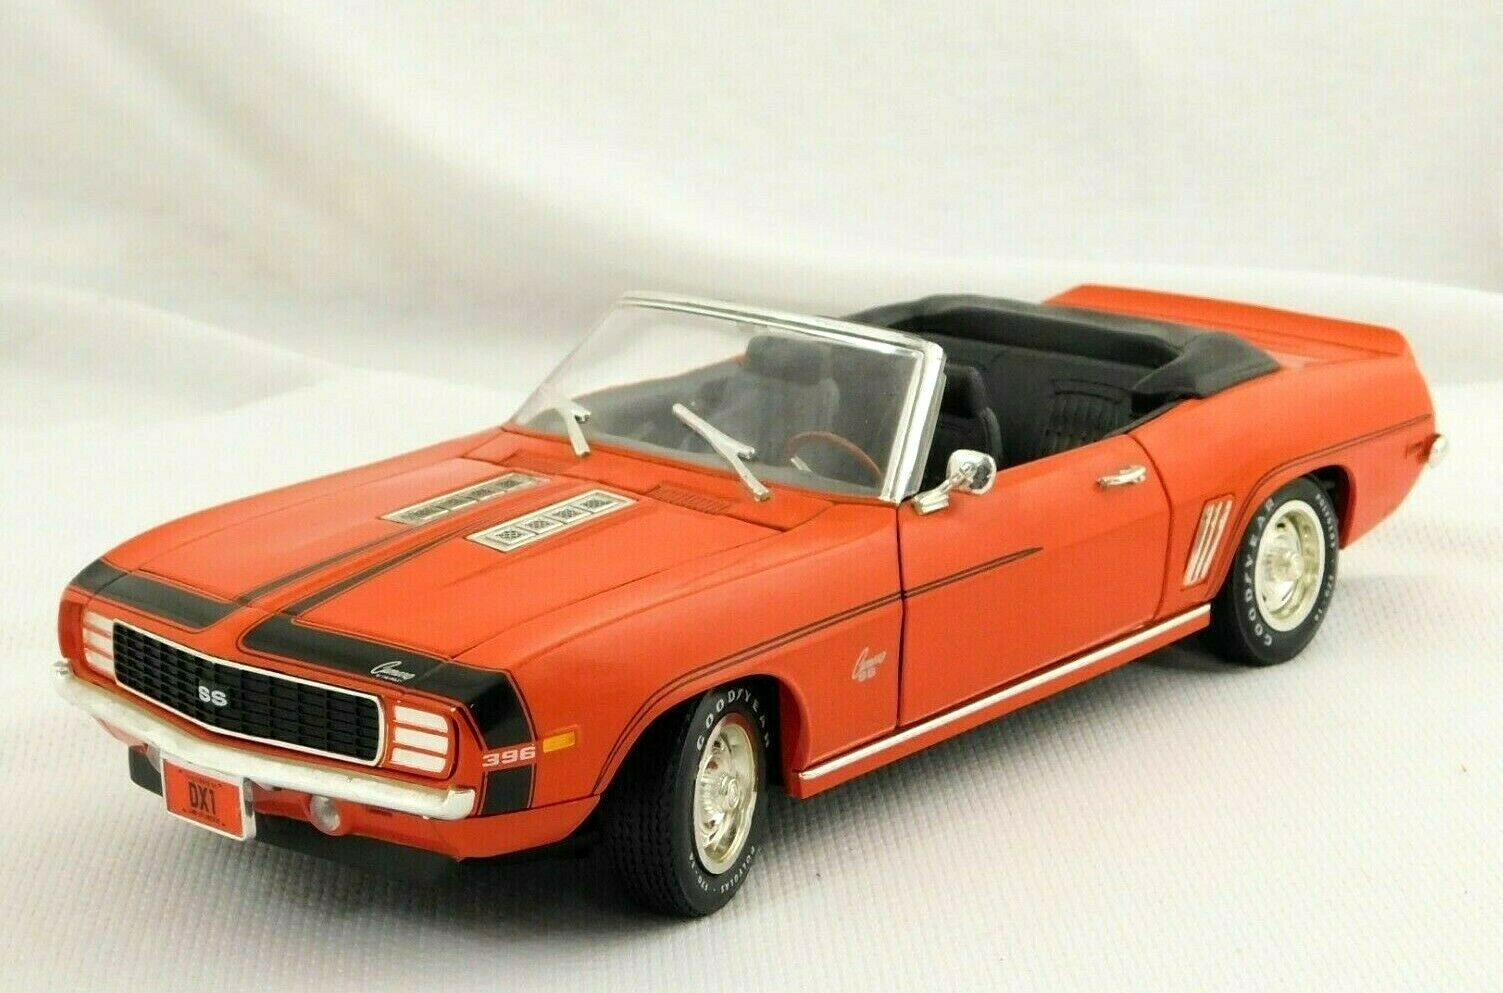 Primary image for ERTL 1969 Chevrolet Camaro SS 396 Convertible Orange Die Cast Car 1/18 No Box